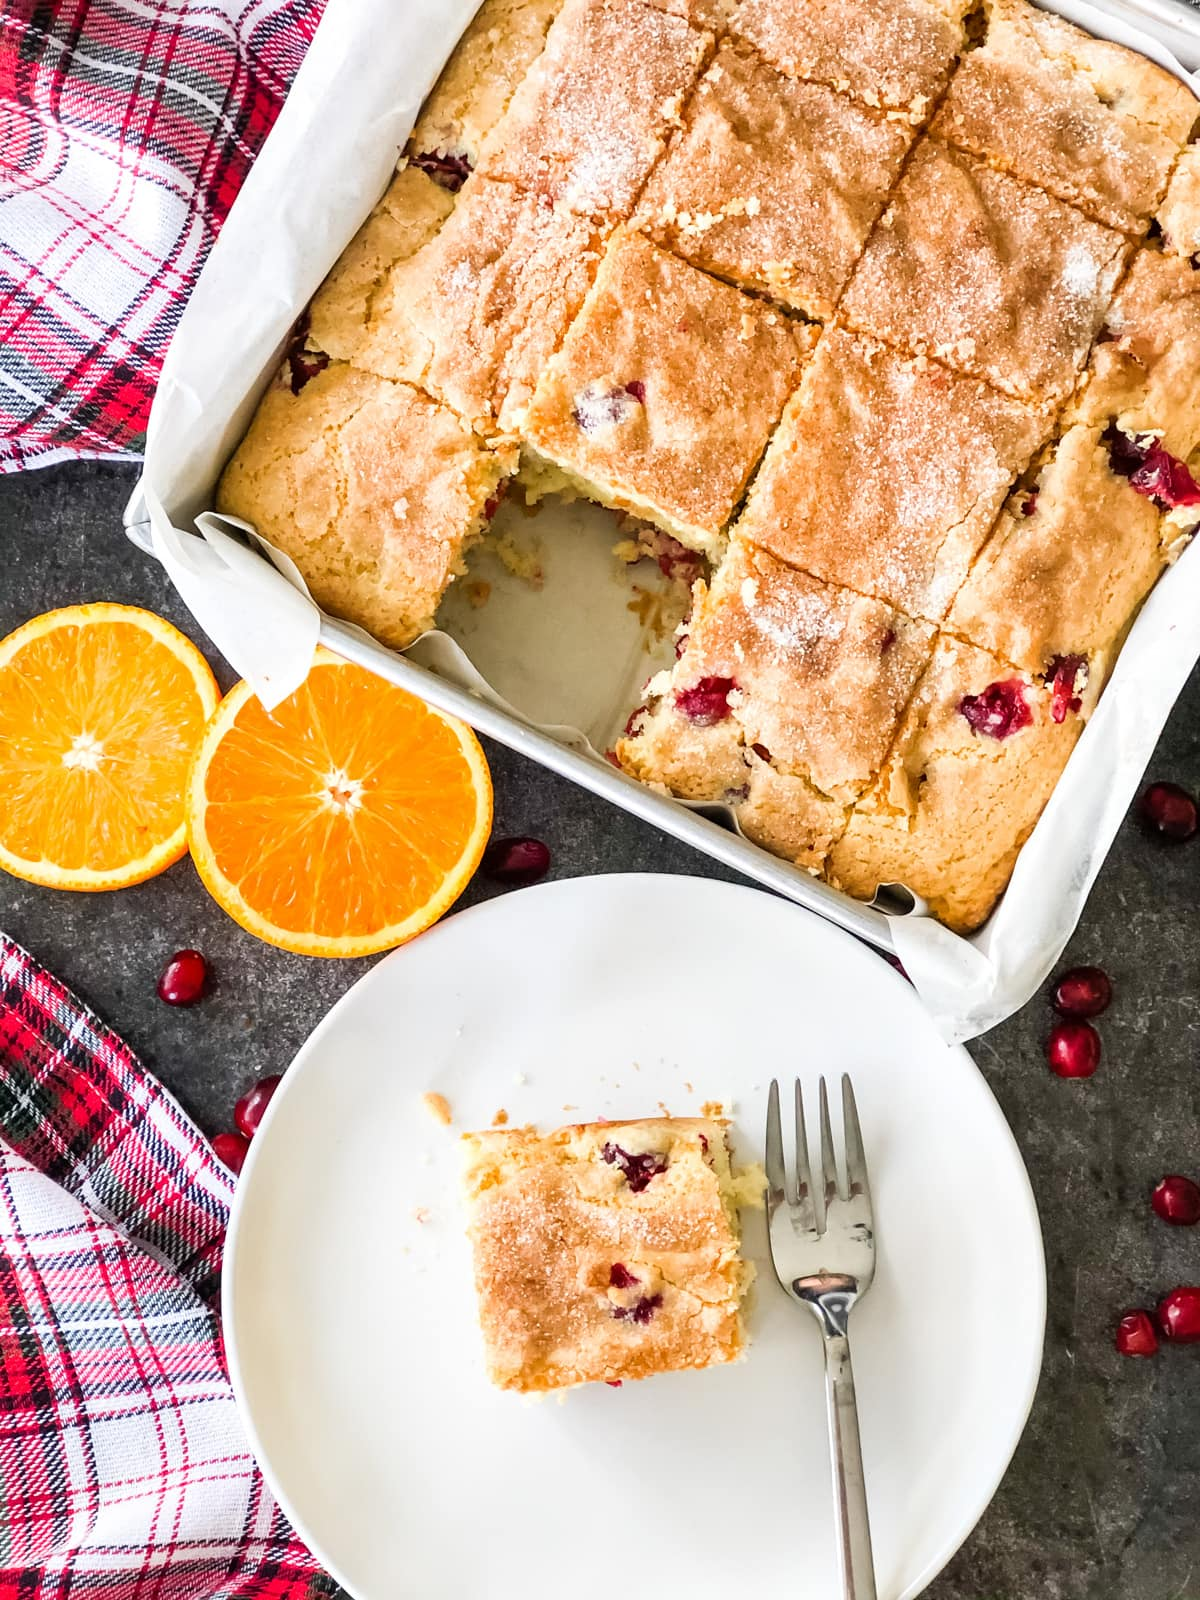 A top down view of a Cranberry Orange Breakfast Cake cut into squares with a piece of cake on a plate